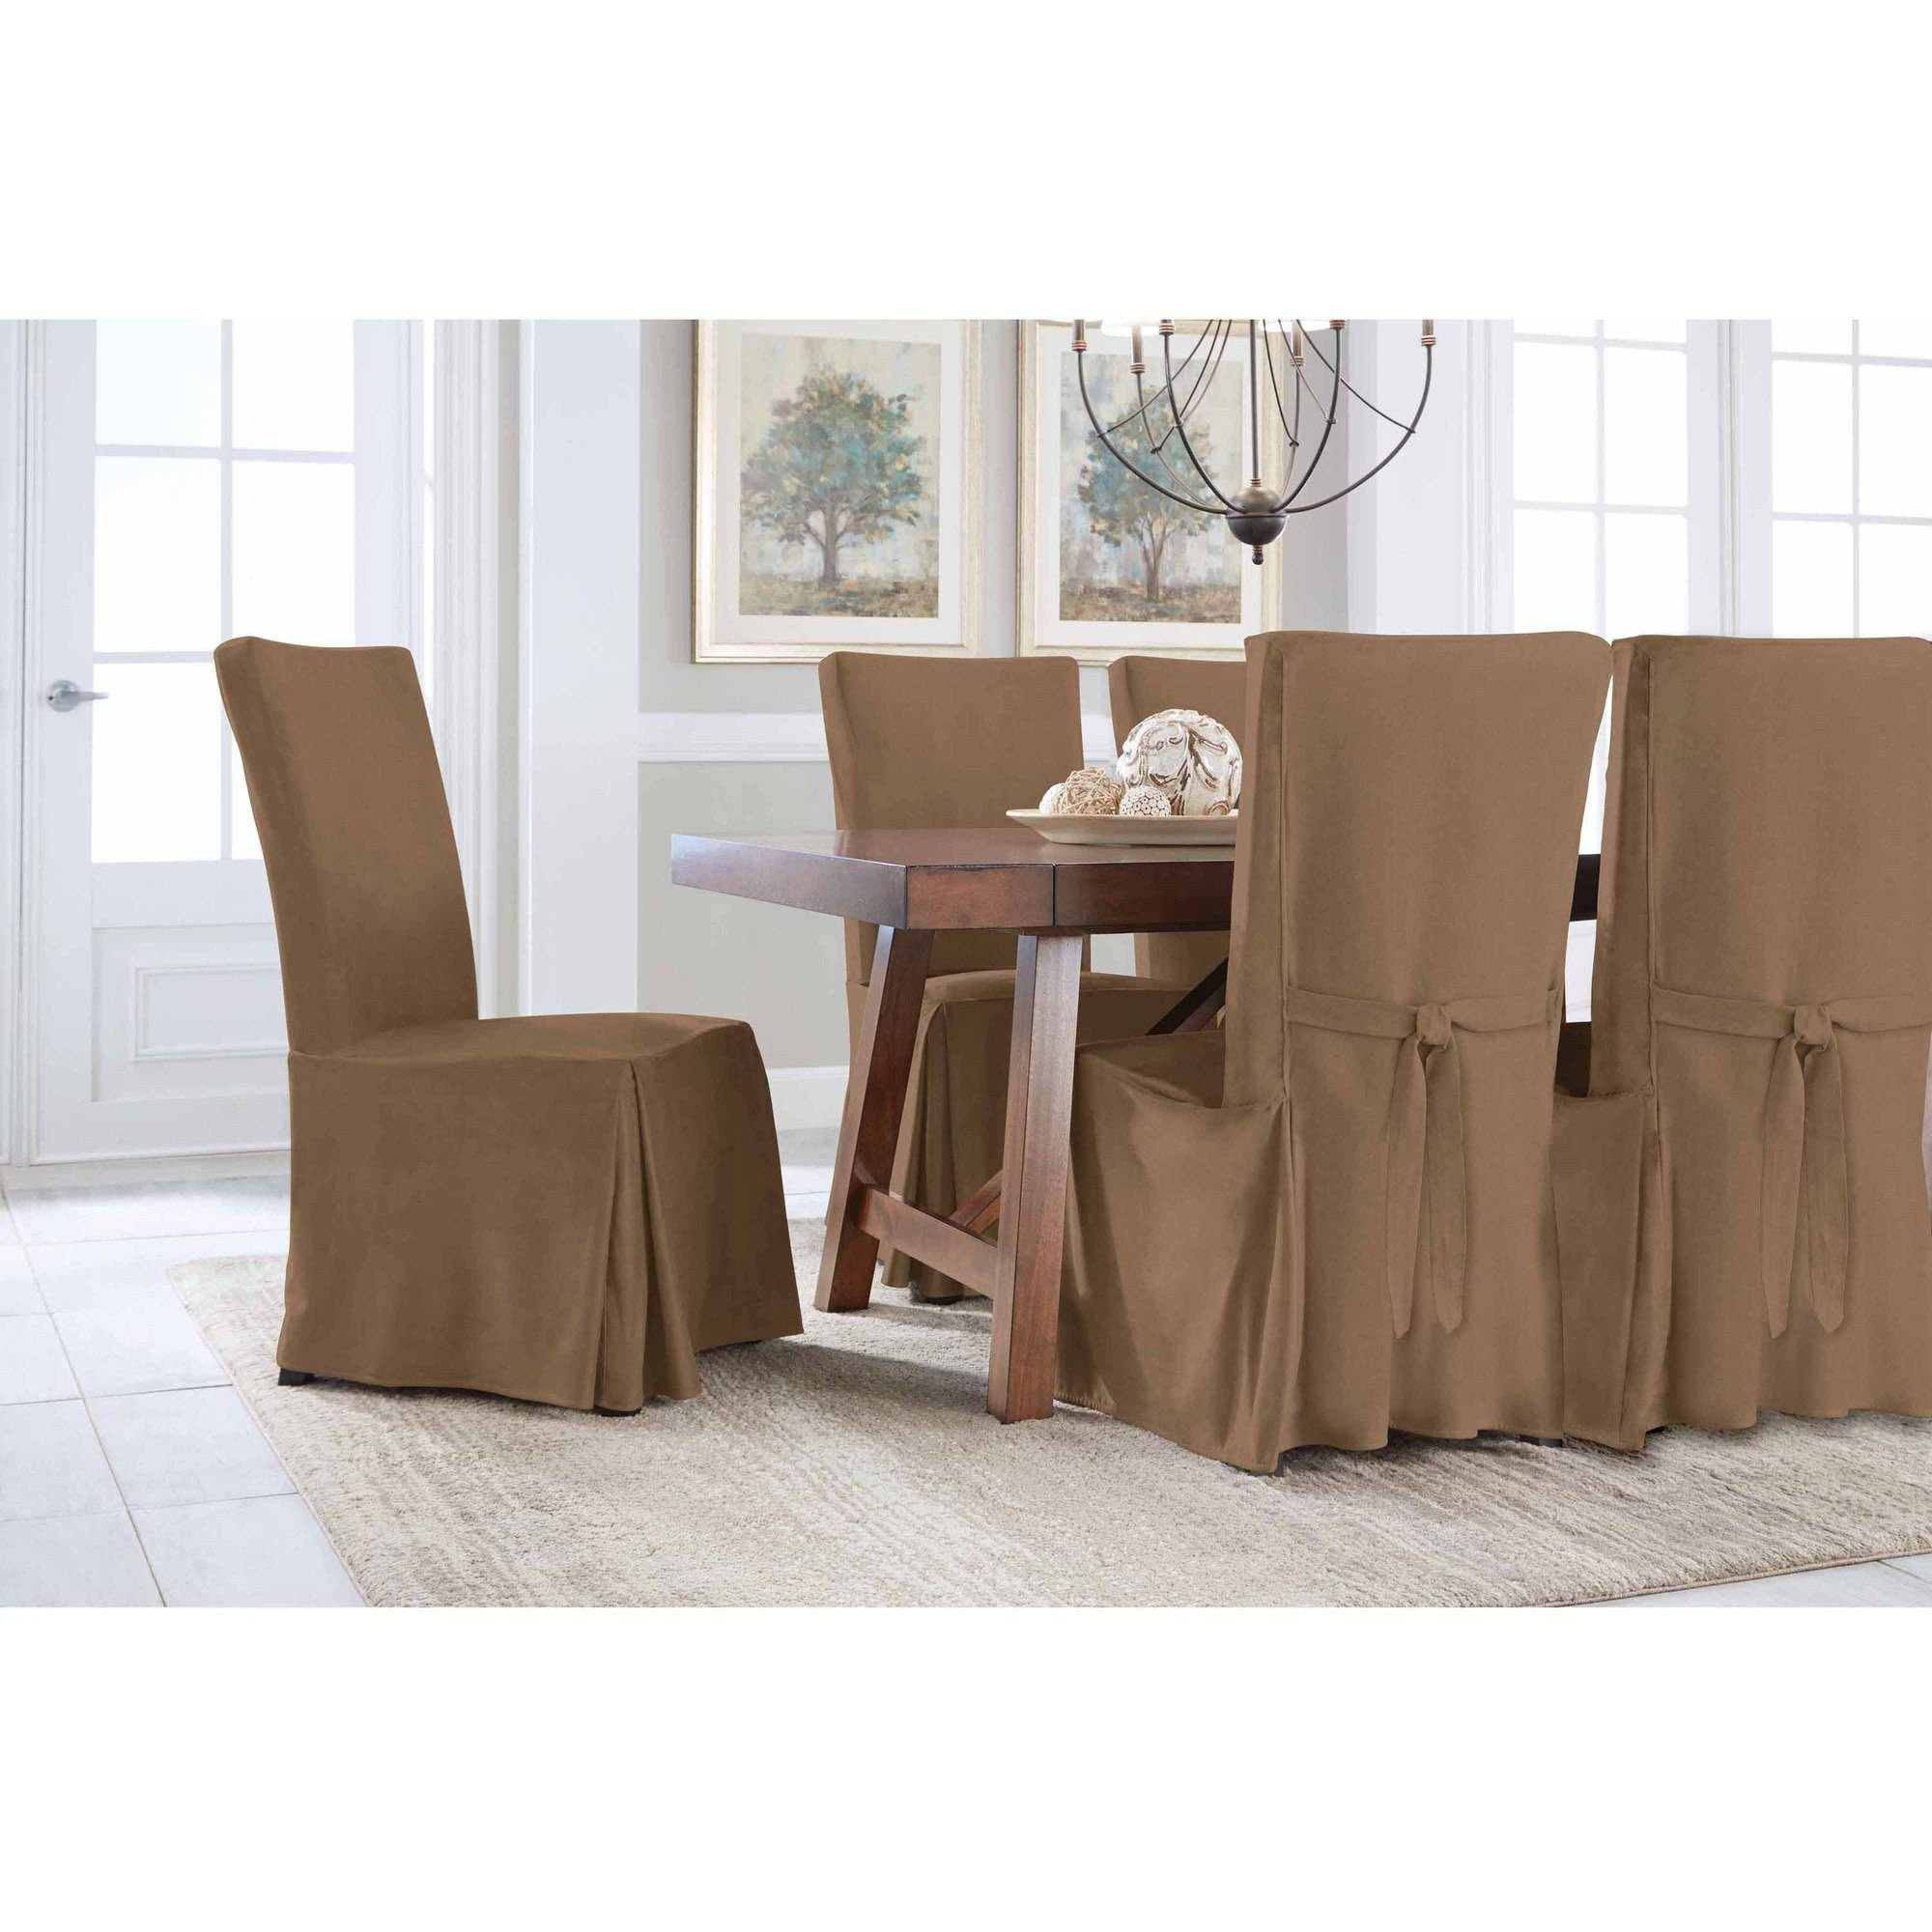 Dining Chair Slipcover Serta Relaxed Fit Smooth Suede Furniture Slipcover 2 Pack Dining Parsons Chair Long Skirt